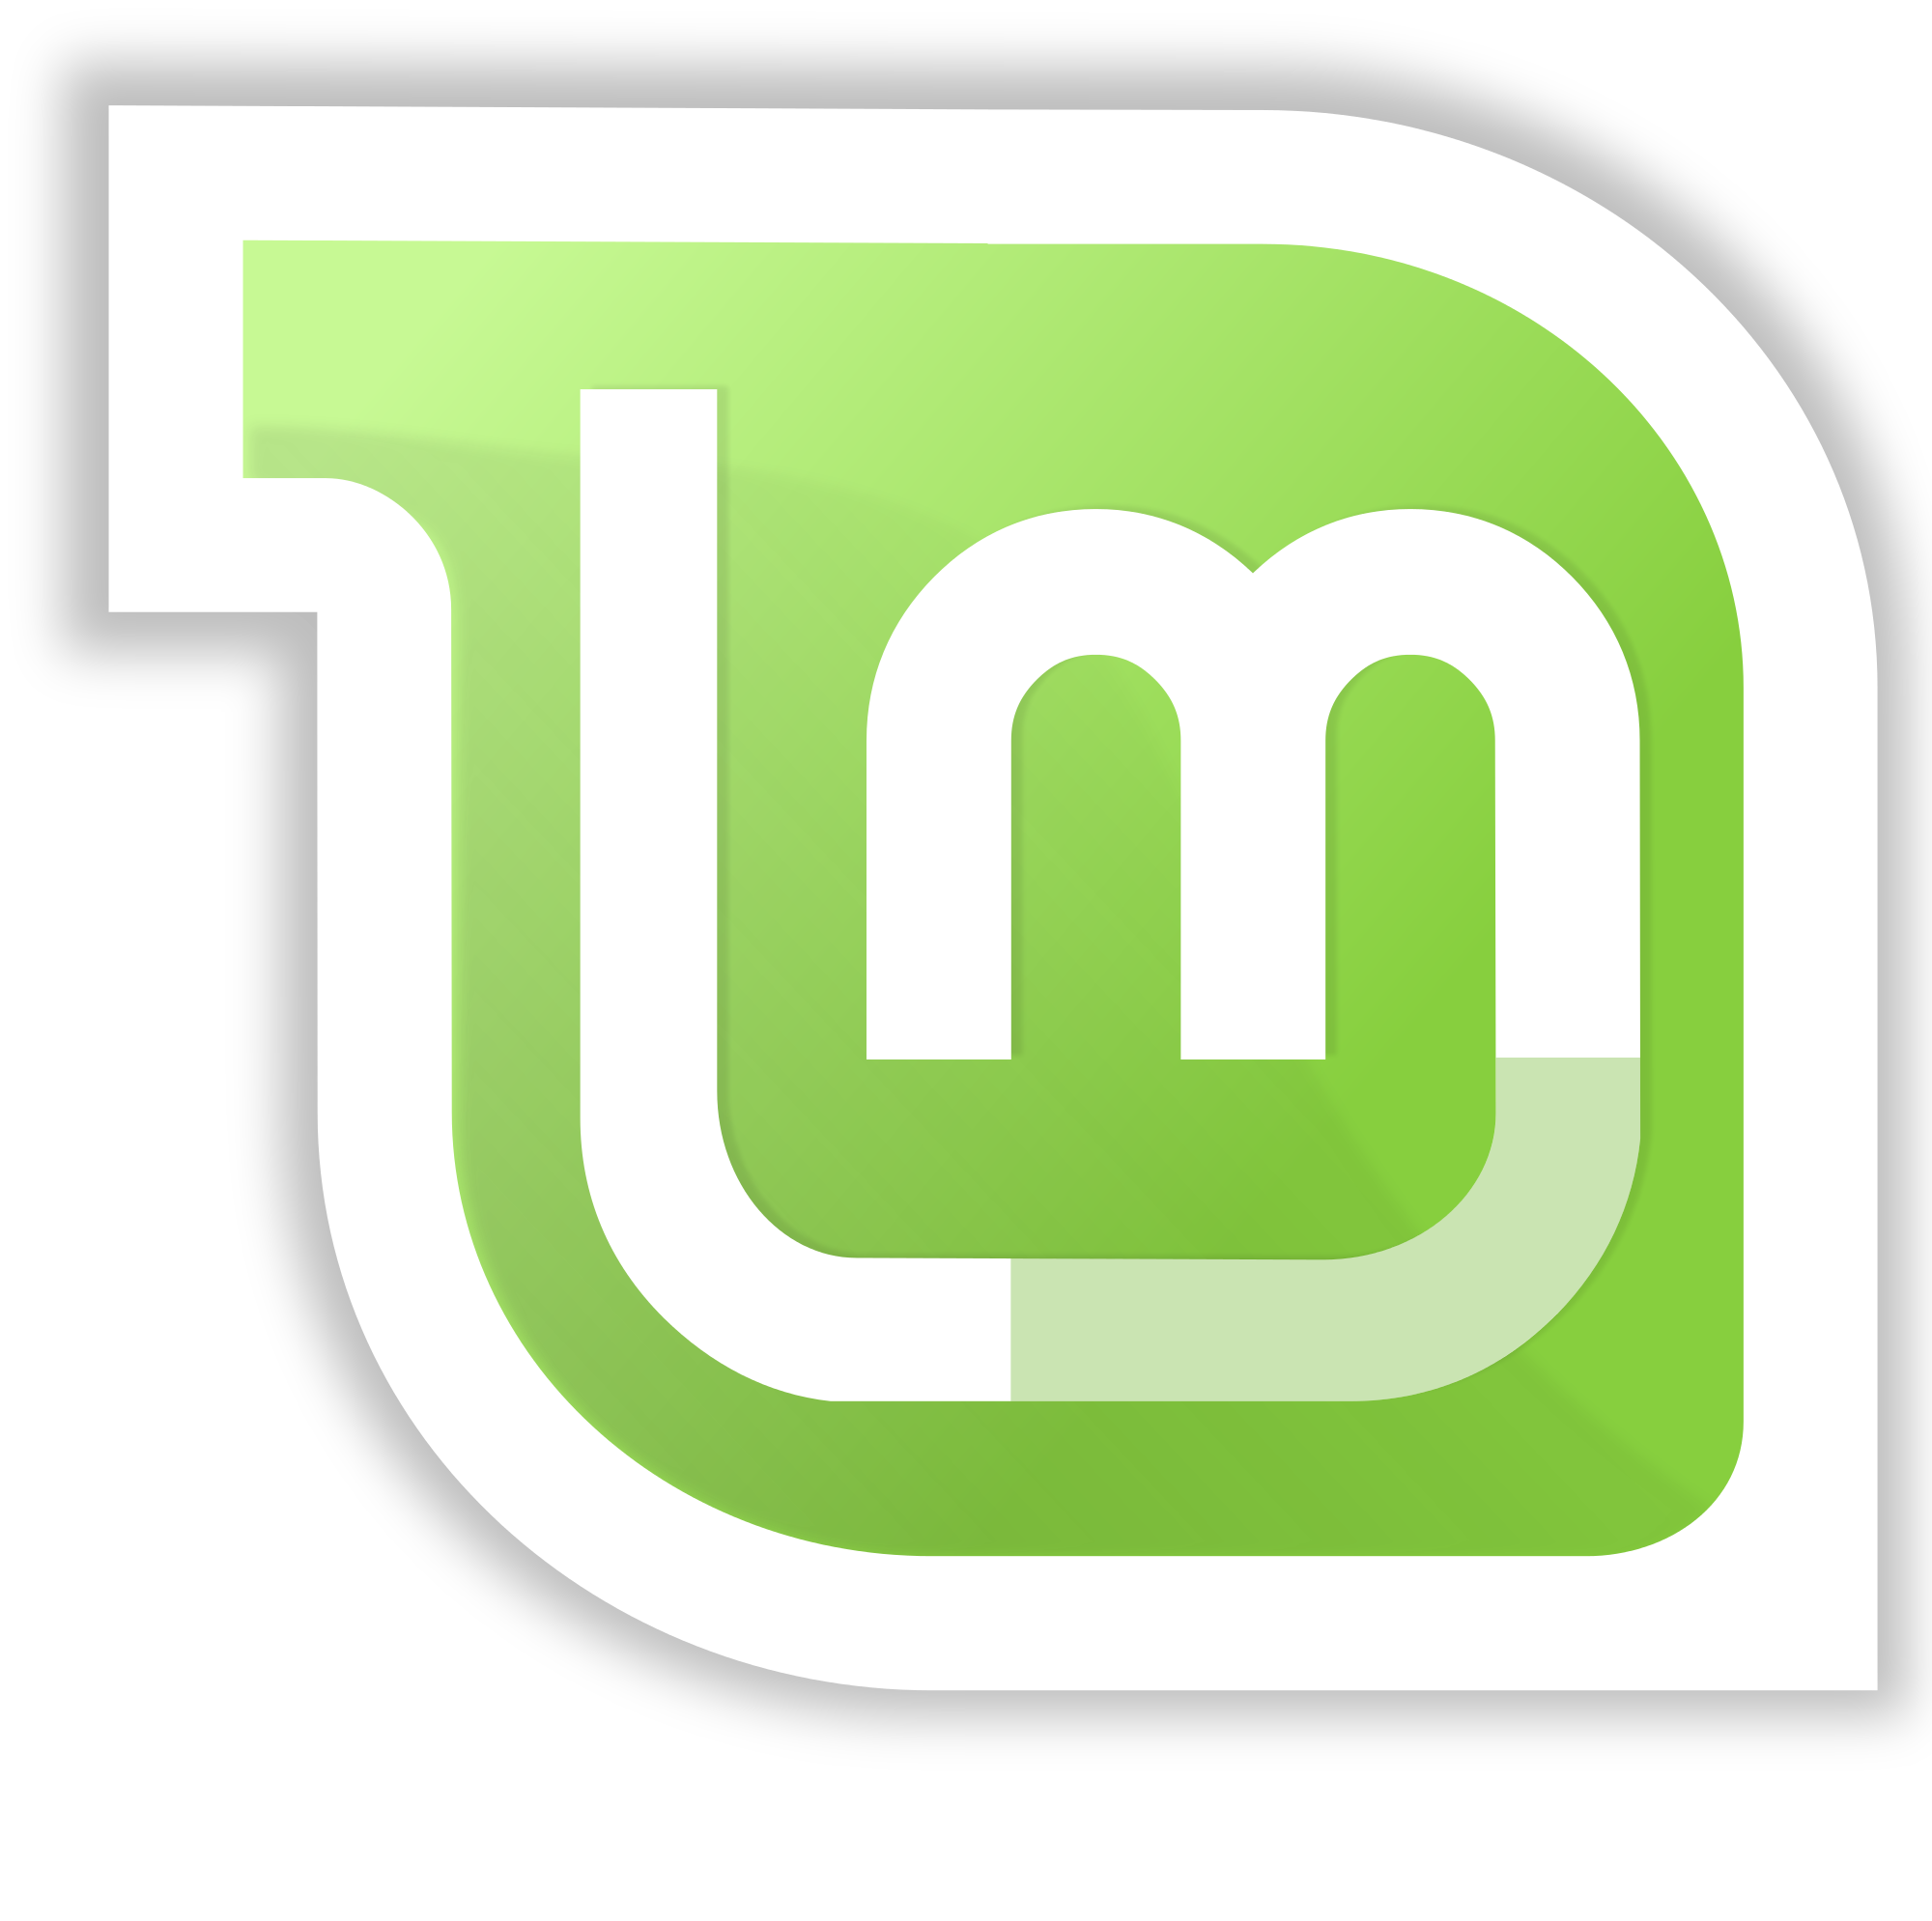 Mint logo png. File linux without wordmark